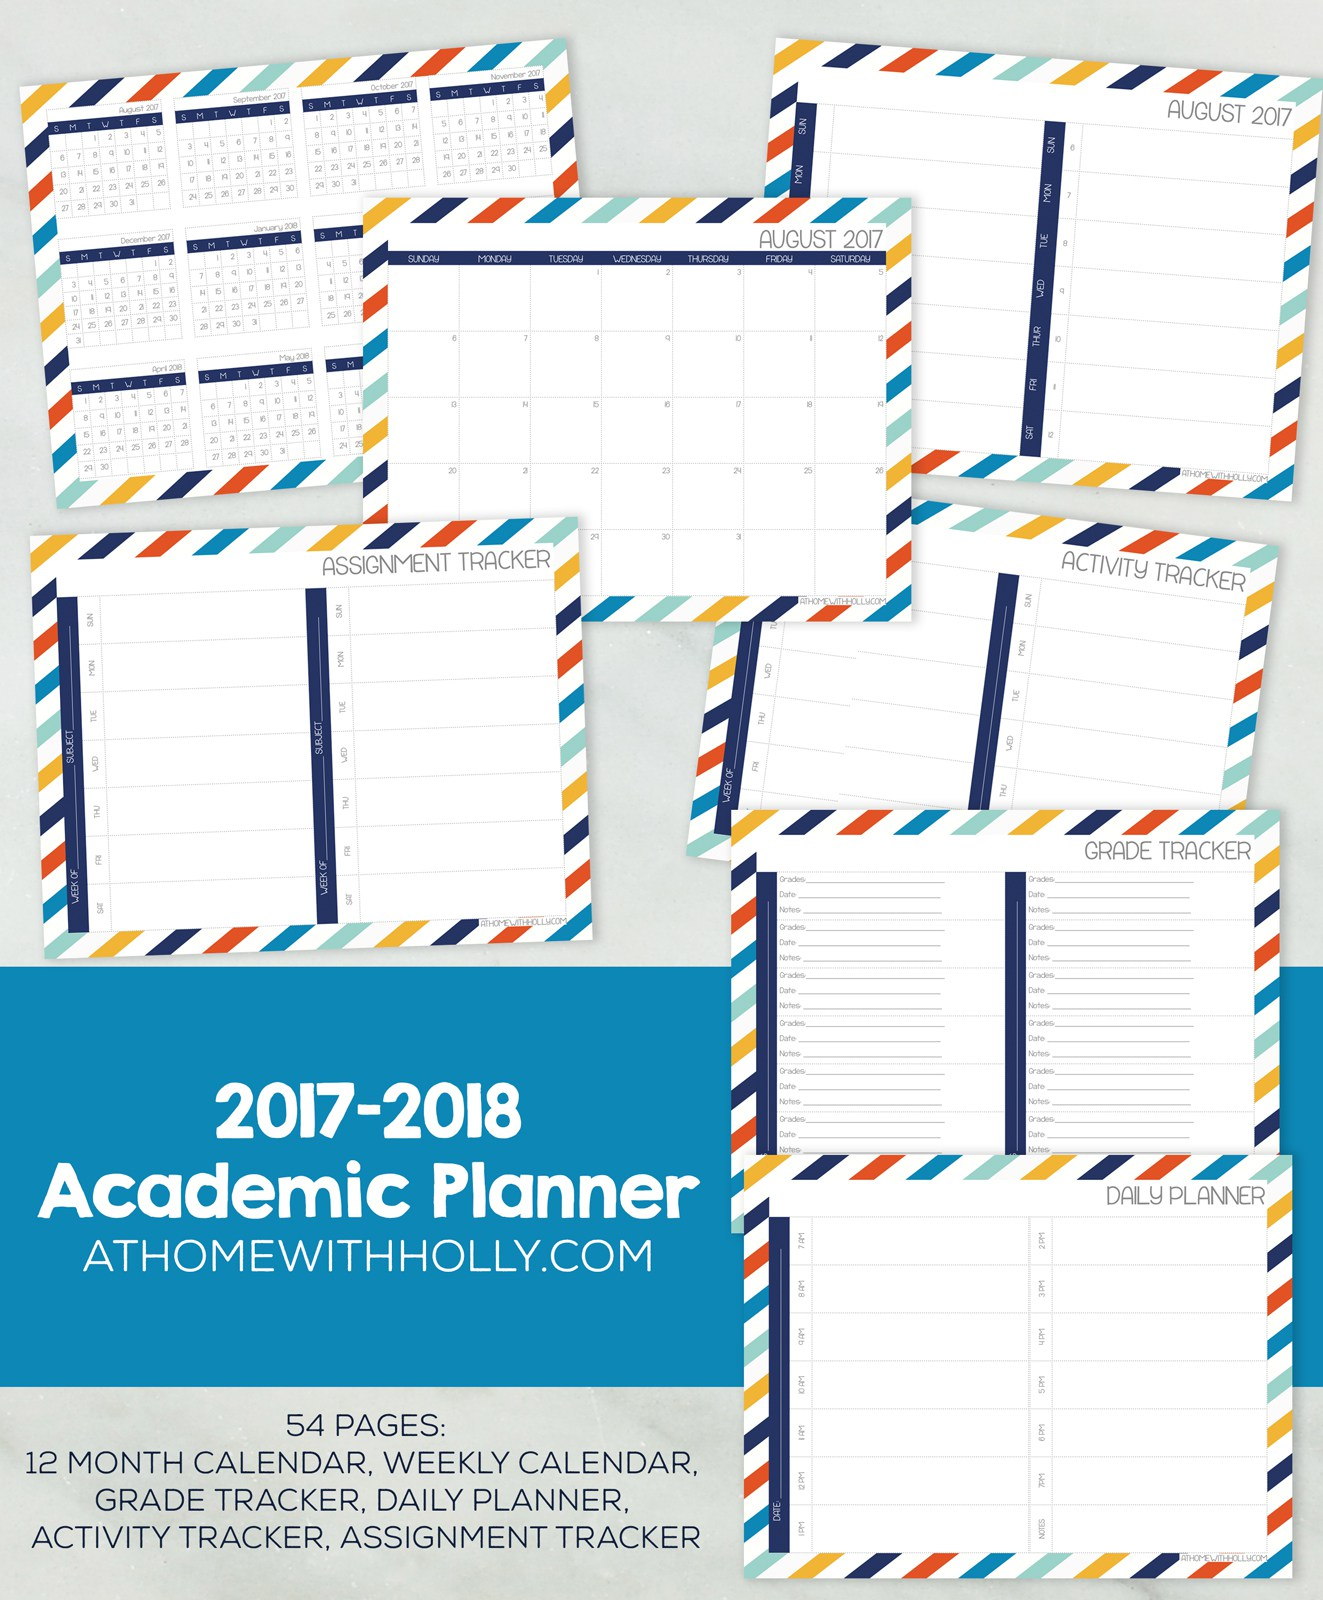 picture about Free Printable Student Planner named No cost Printable Scholar Educational Planner Economical Preserving Mother